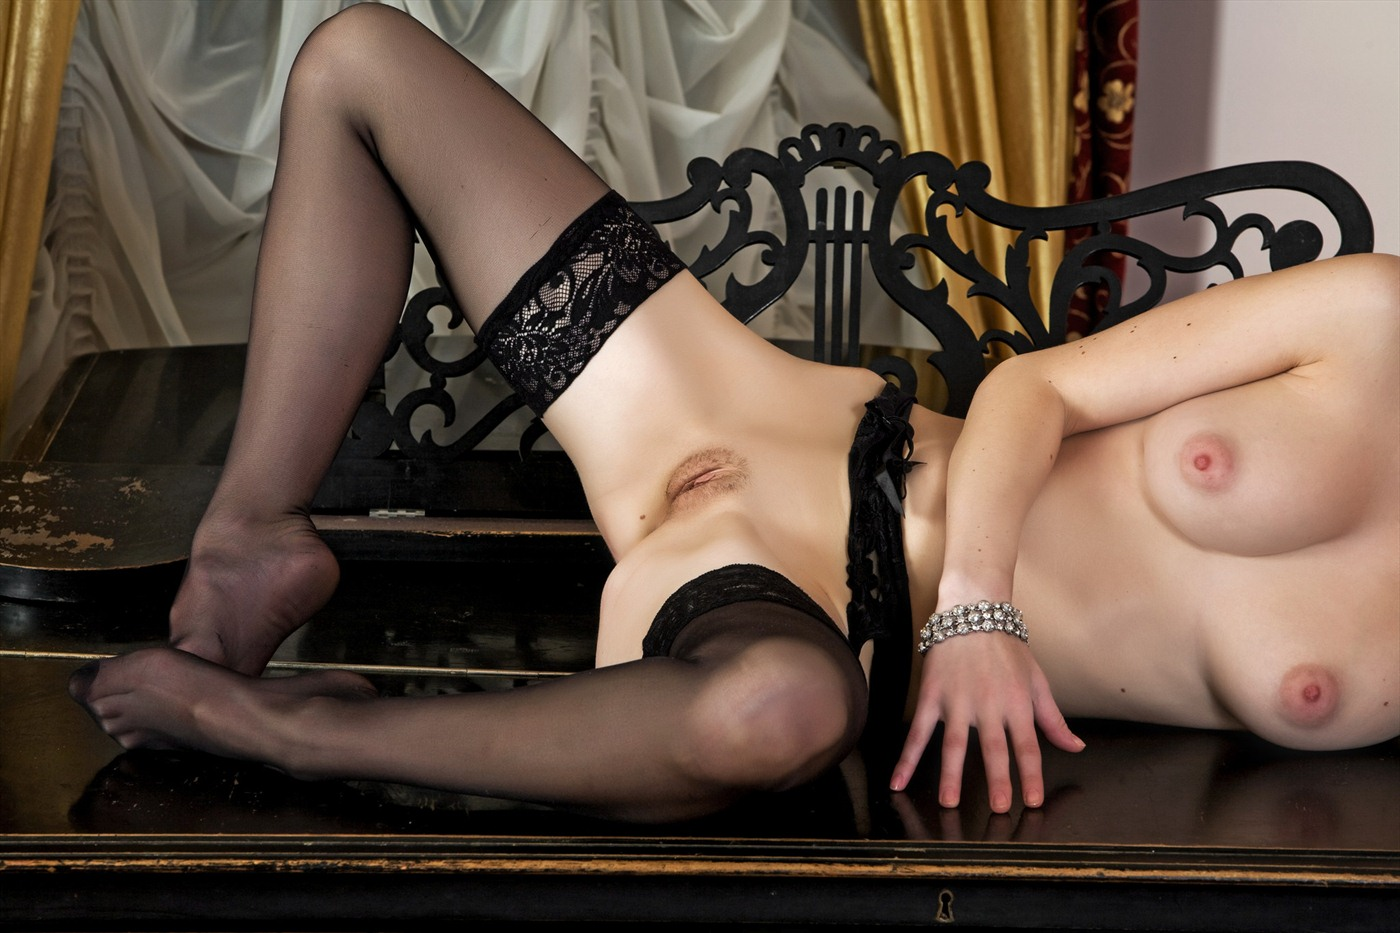 Have hit Erotic art gallery los angeles recommend you